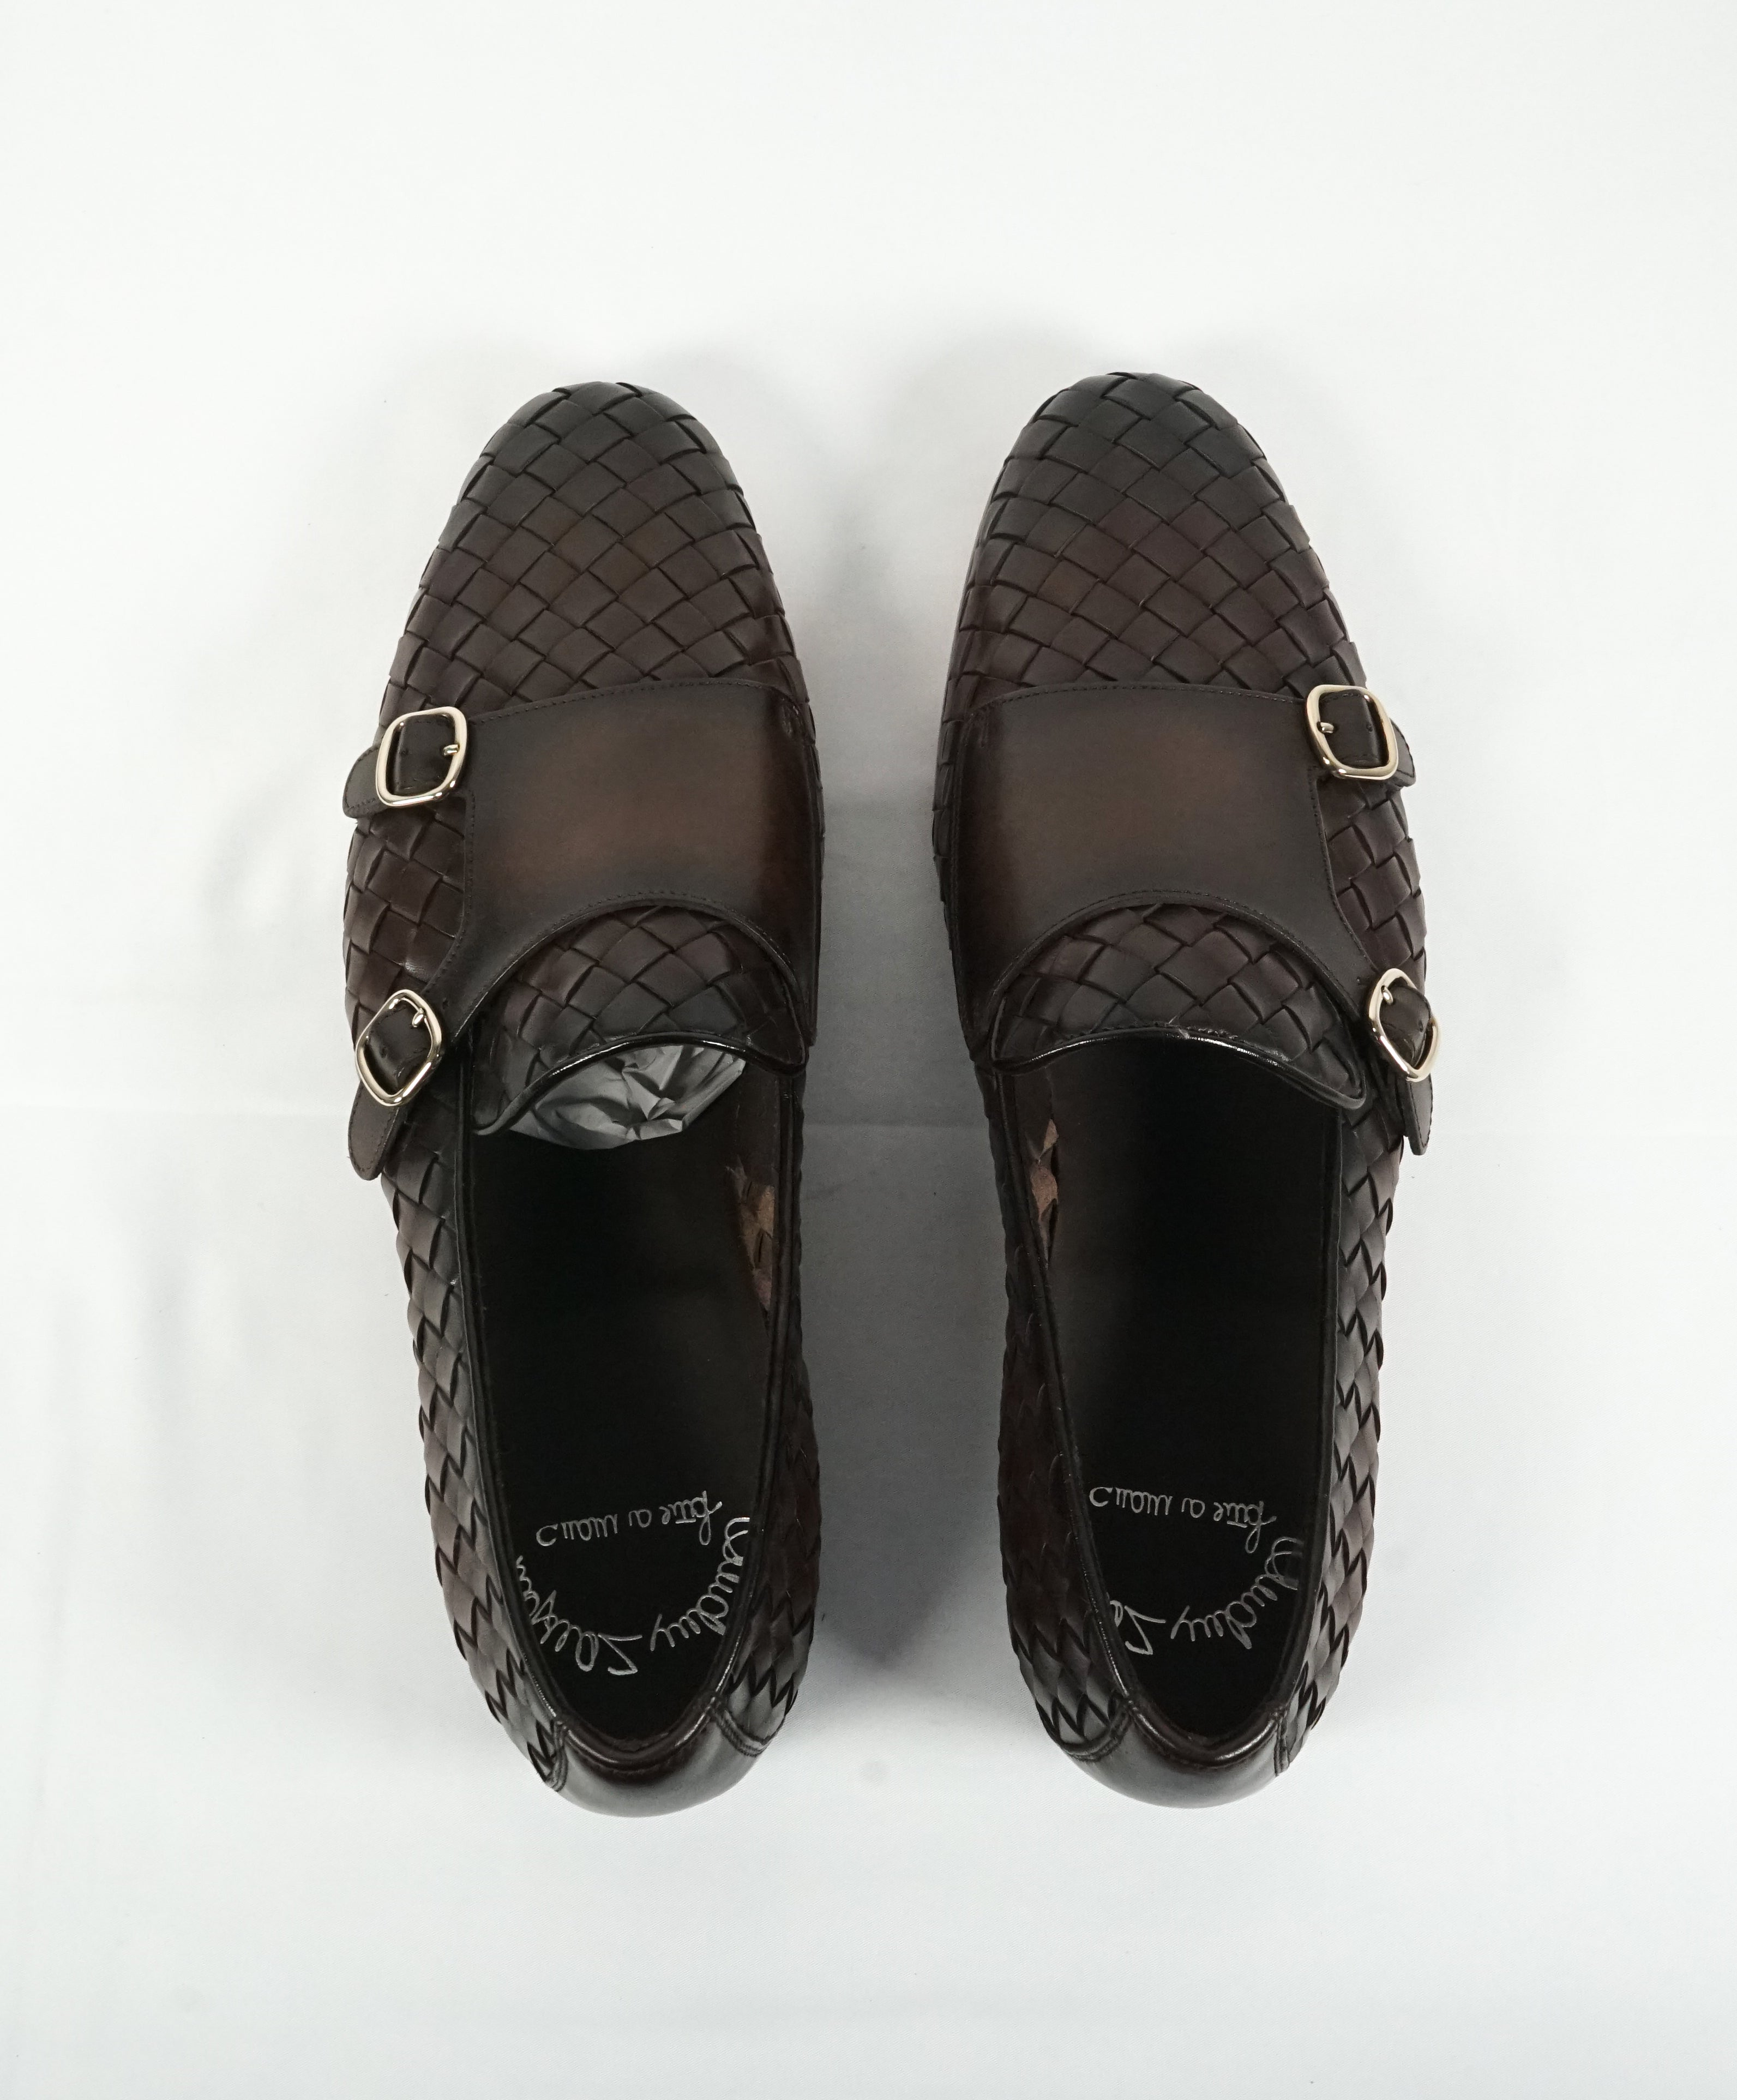 SANTONI - Brown Hand Antiqued Woven Leather Monk Strap Loafers- 10.5